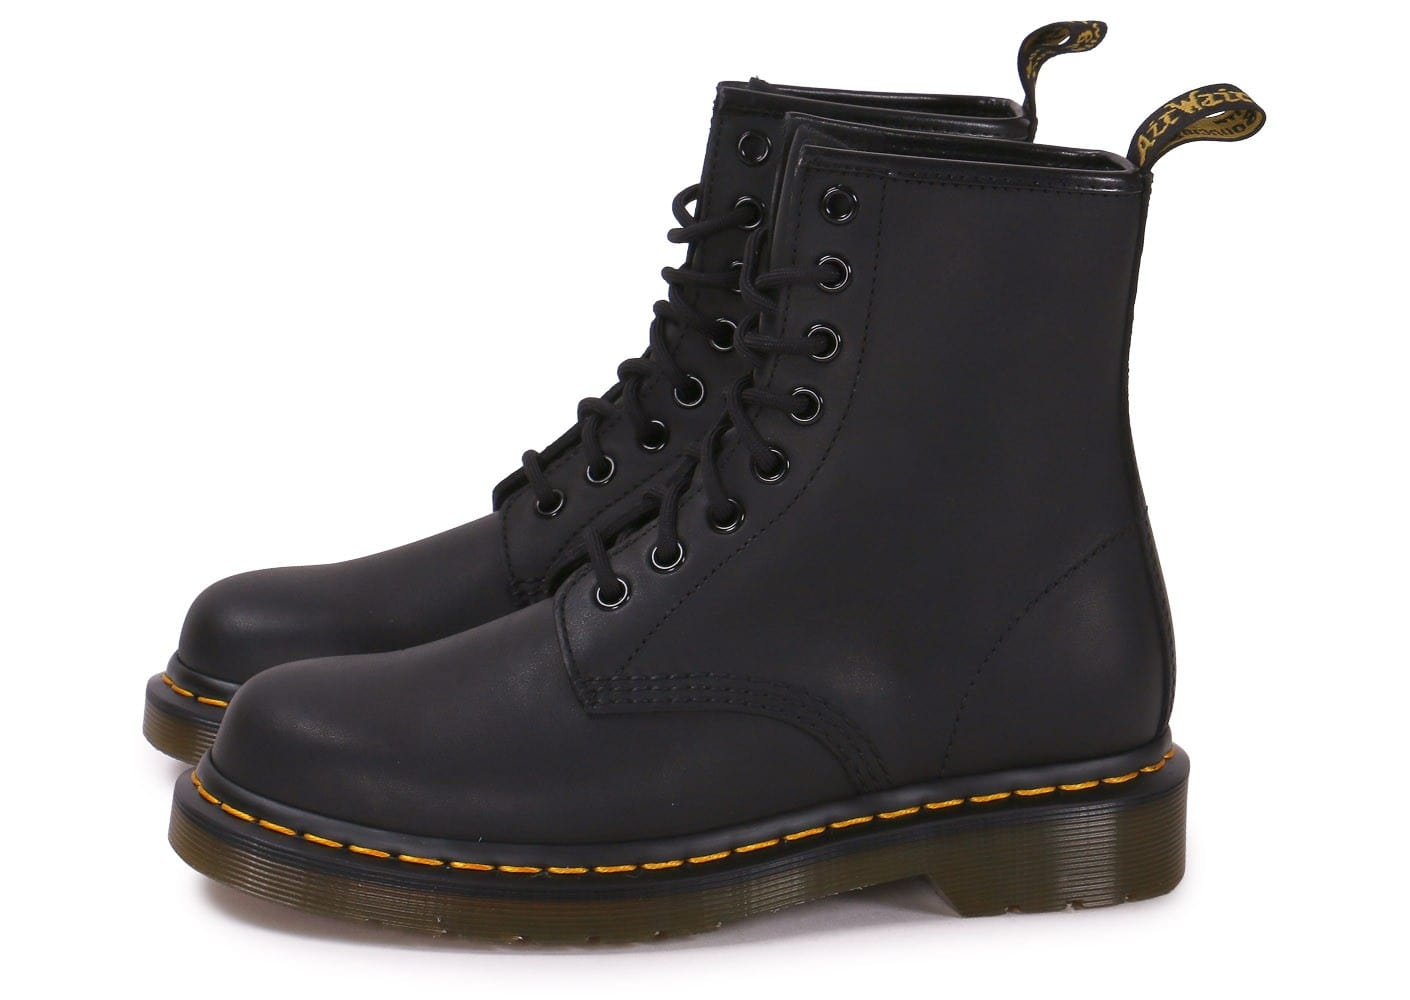 Dr Martens Chaussures Chausport Cuir Noir Gras 1460 m8nwP0yvNO